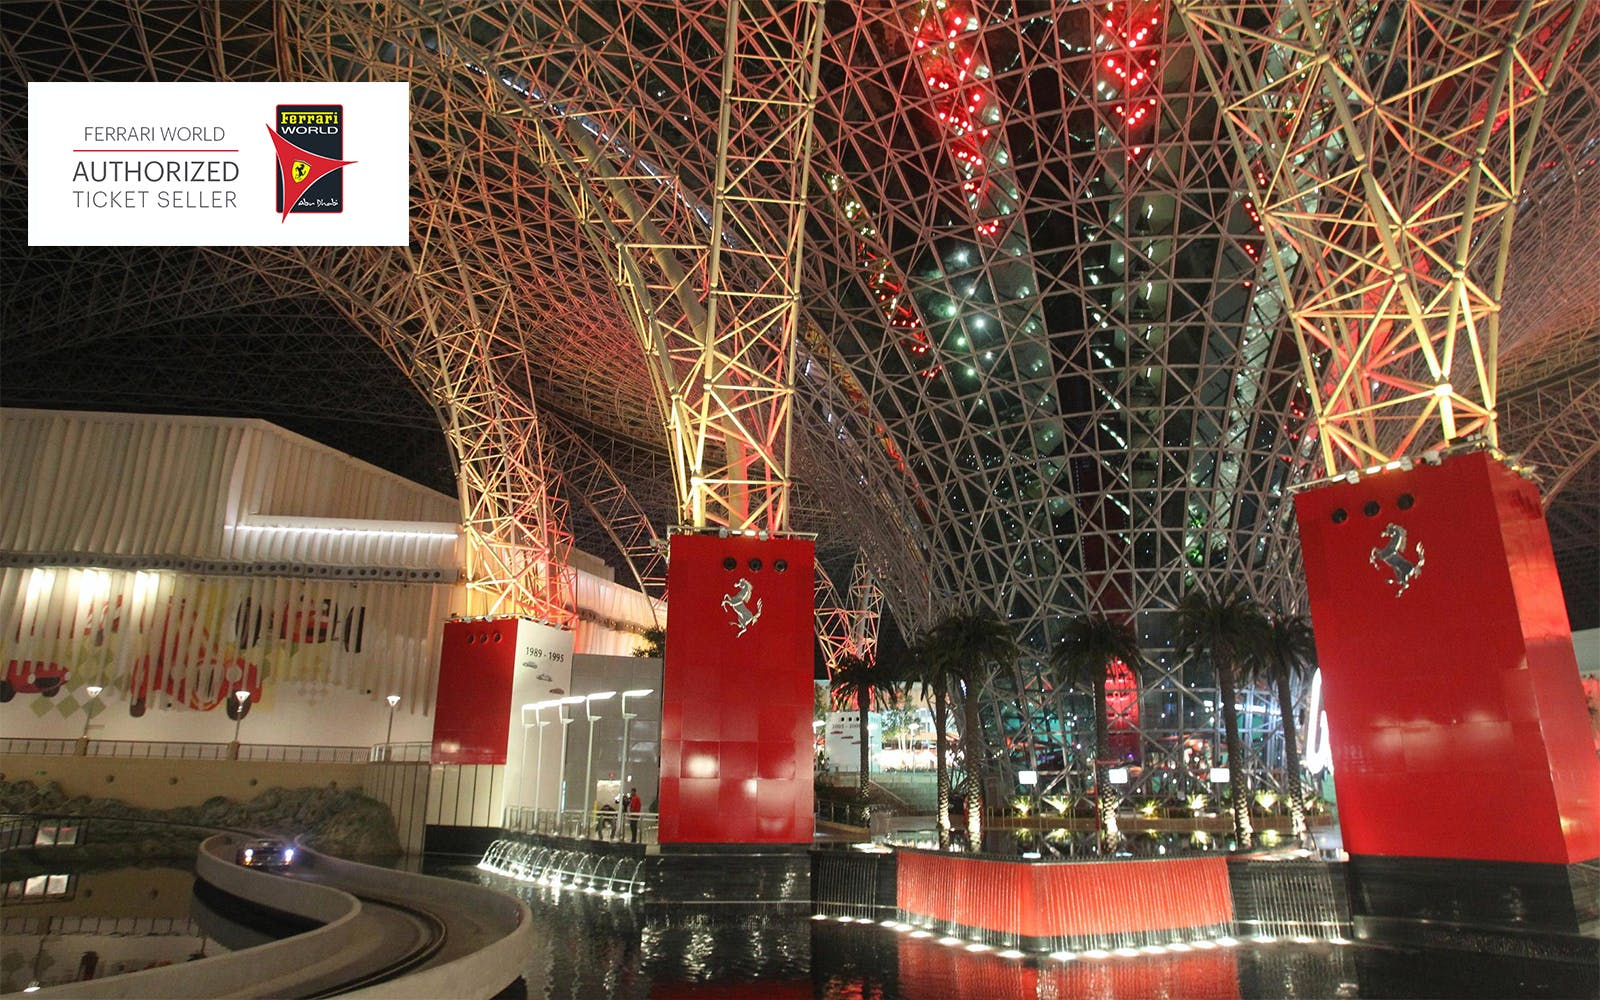 ferrari world gold pass with transfers-2